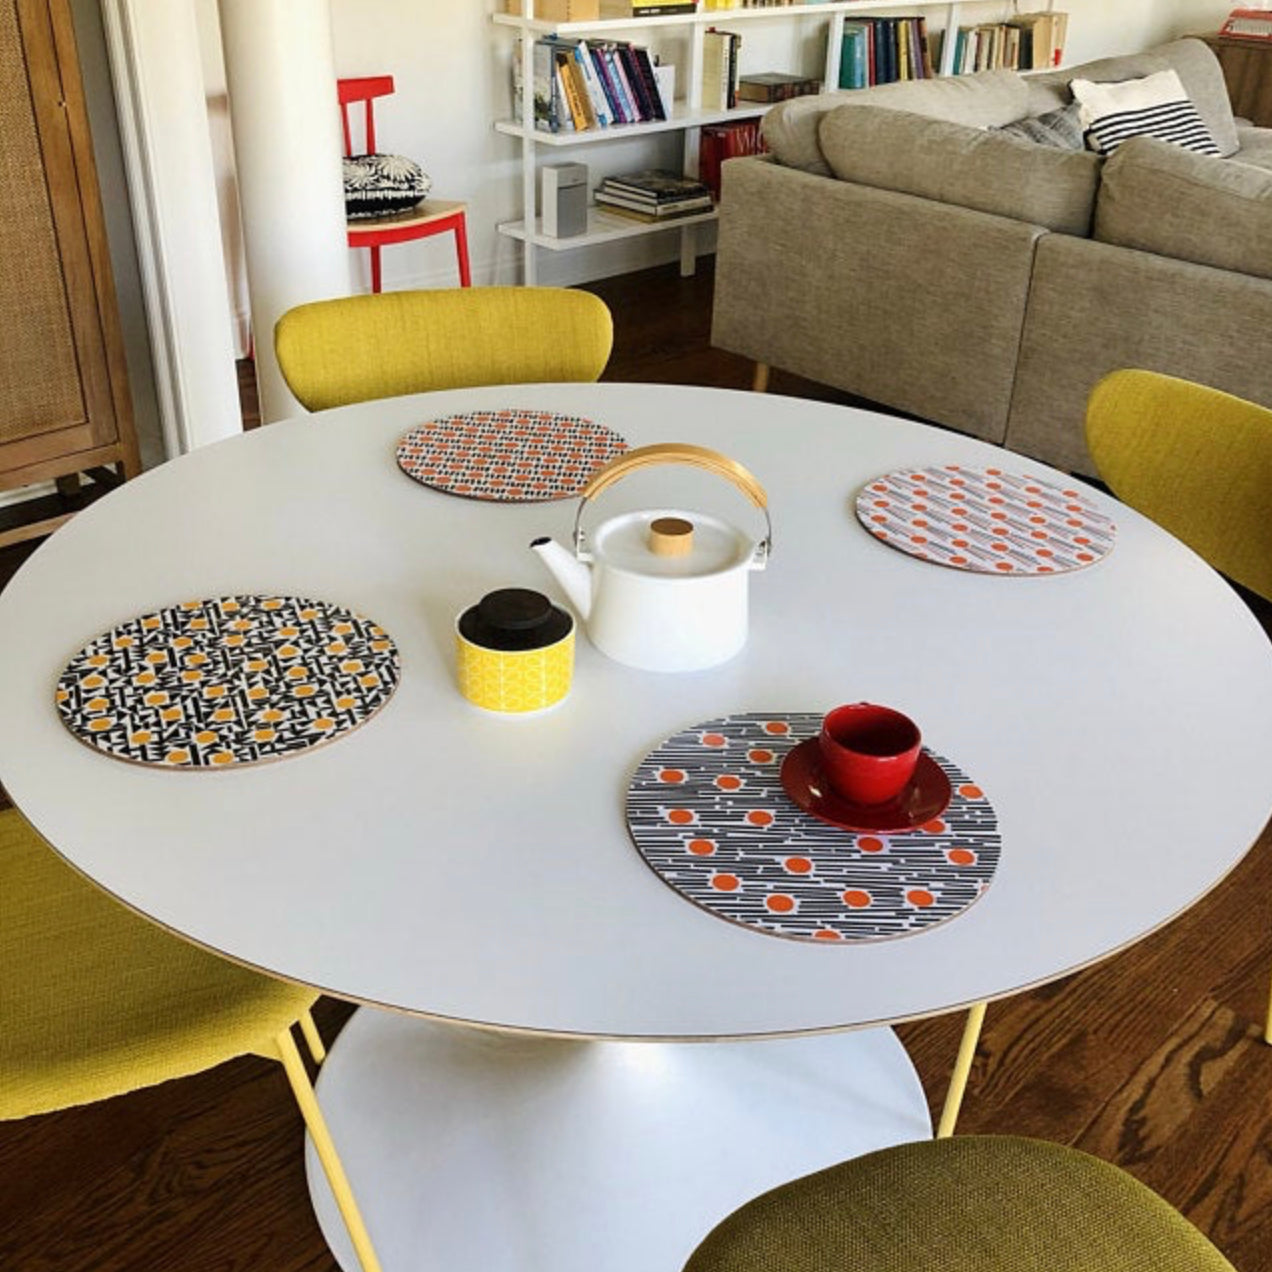 Set of 6 Round Placemats - yellow and orange